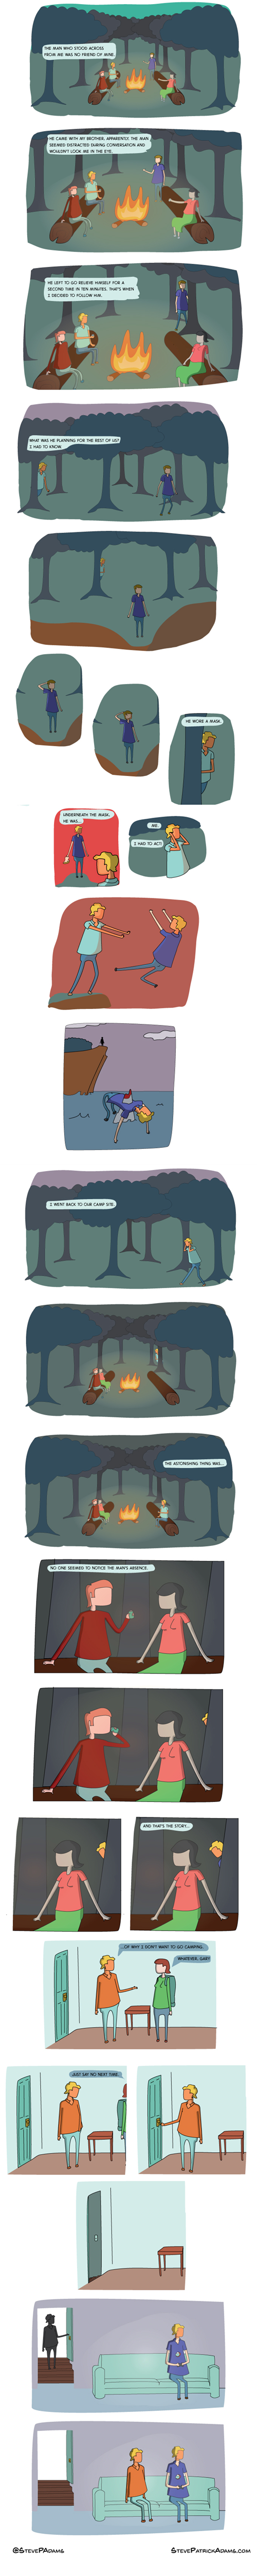 wtf creepy doppleganger camping web comics - 8275080192